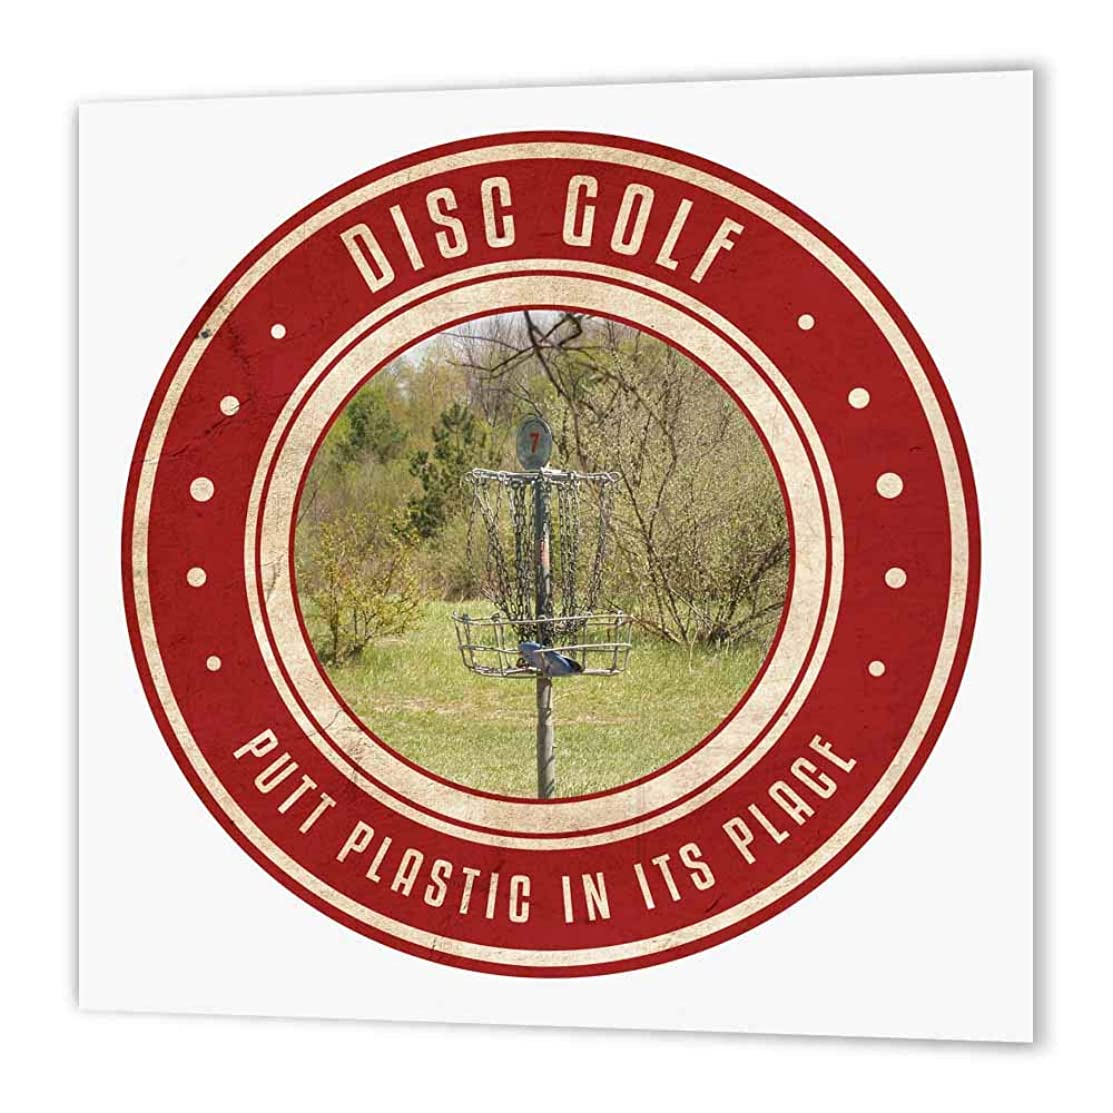 3dRose ht_39410_2 Putt Plastic in its Place No.13-Photography of a Frisbee Disc Golf Basket-Iron on Heat Transfer Paper for White Material, 6 by 6-Inch